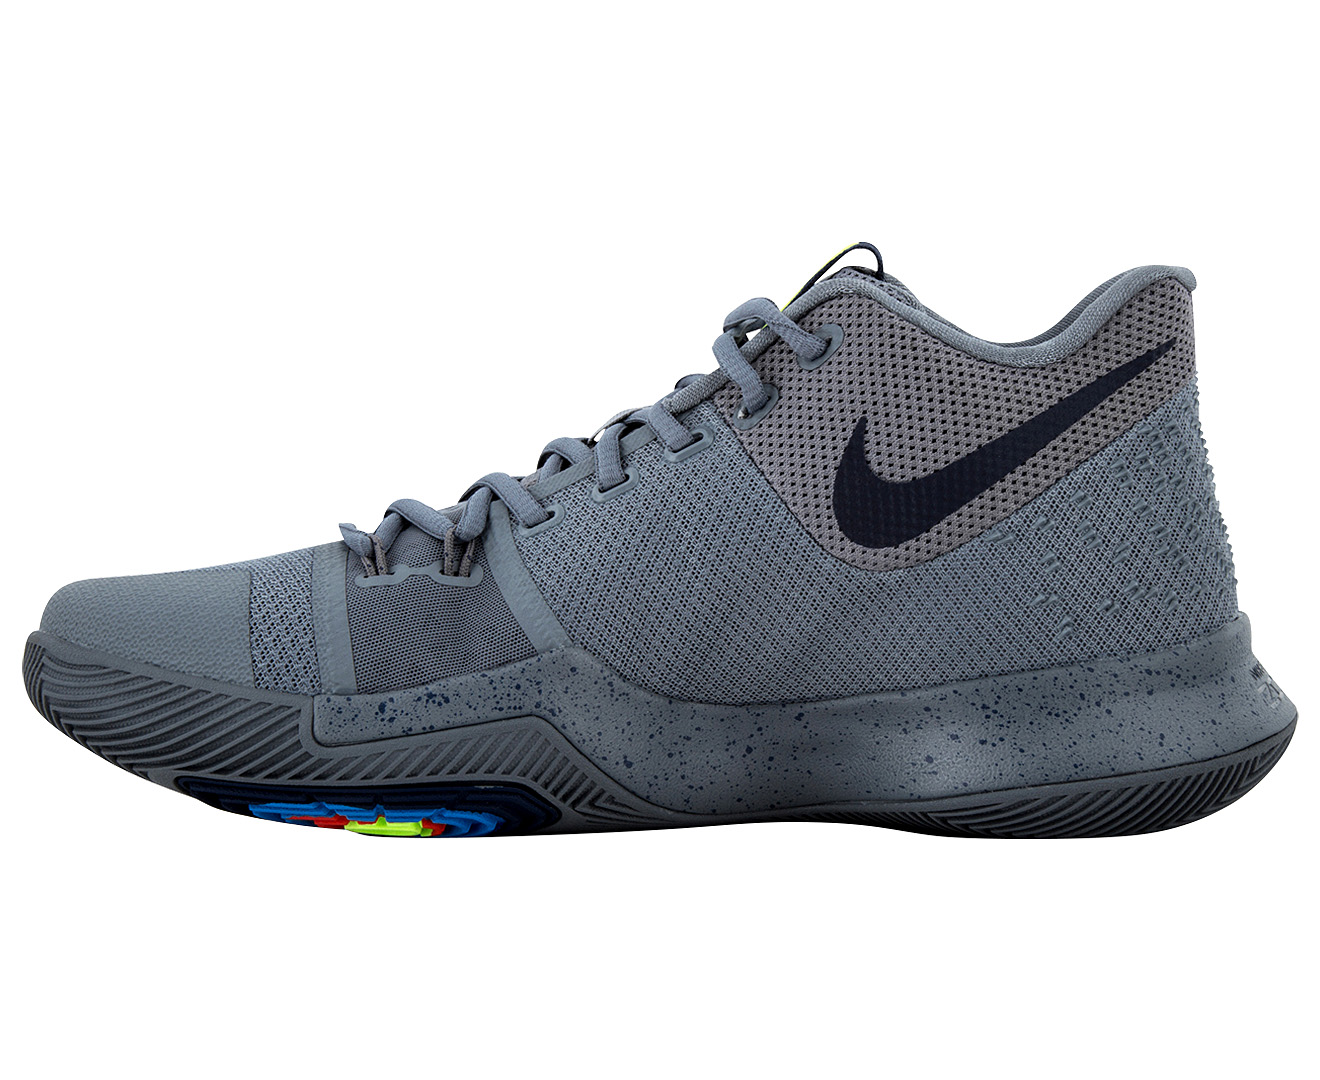 99e0e37939c Nike Men s Kyrie 3 Shoe - Cool Grey Midnight Navy-Pure